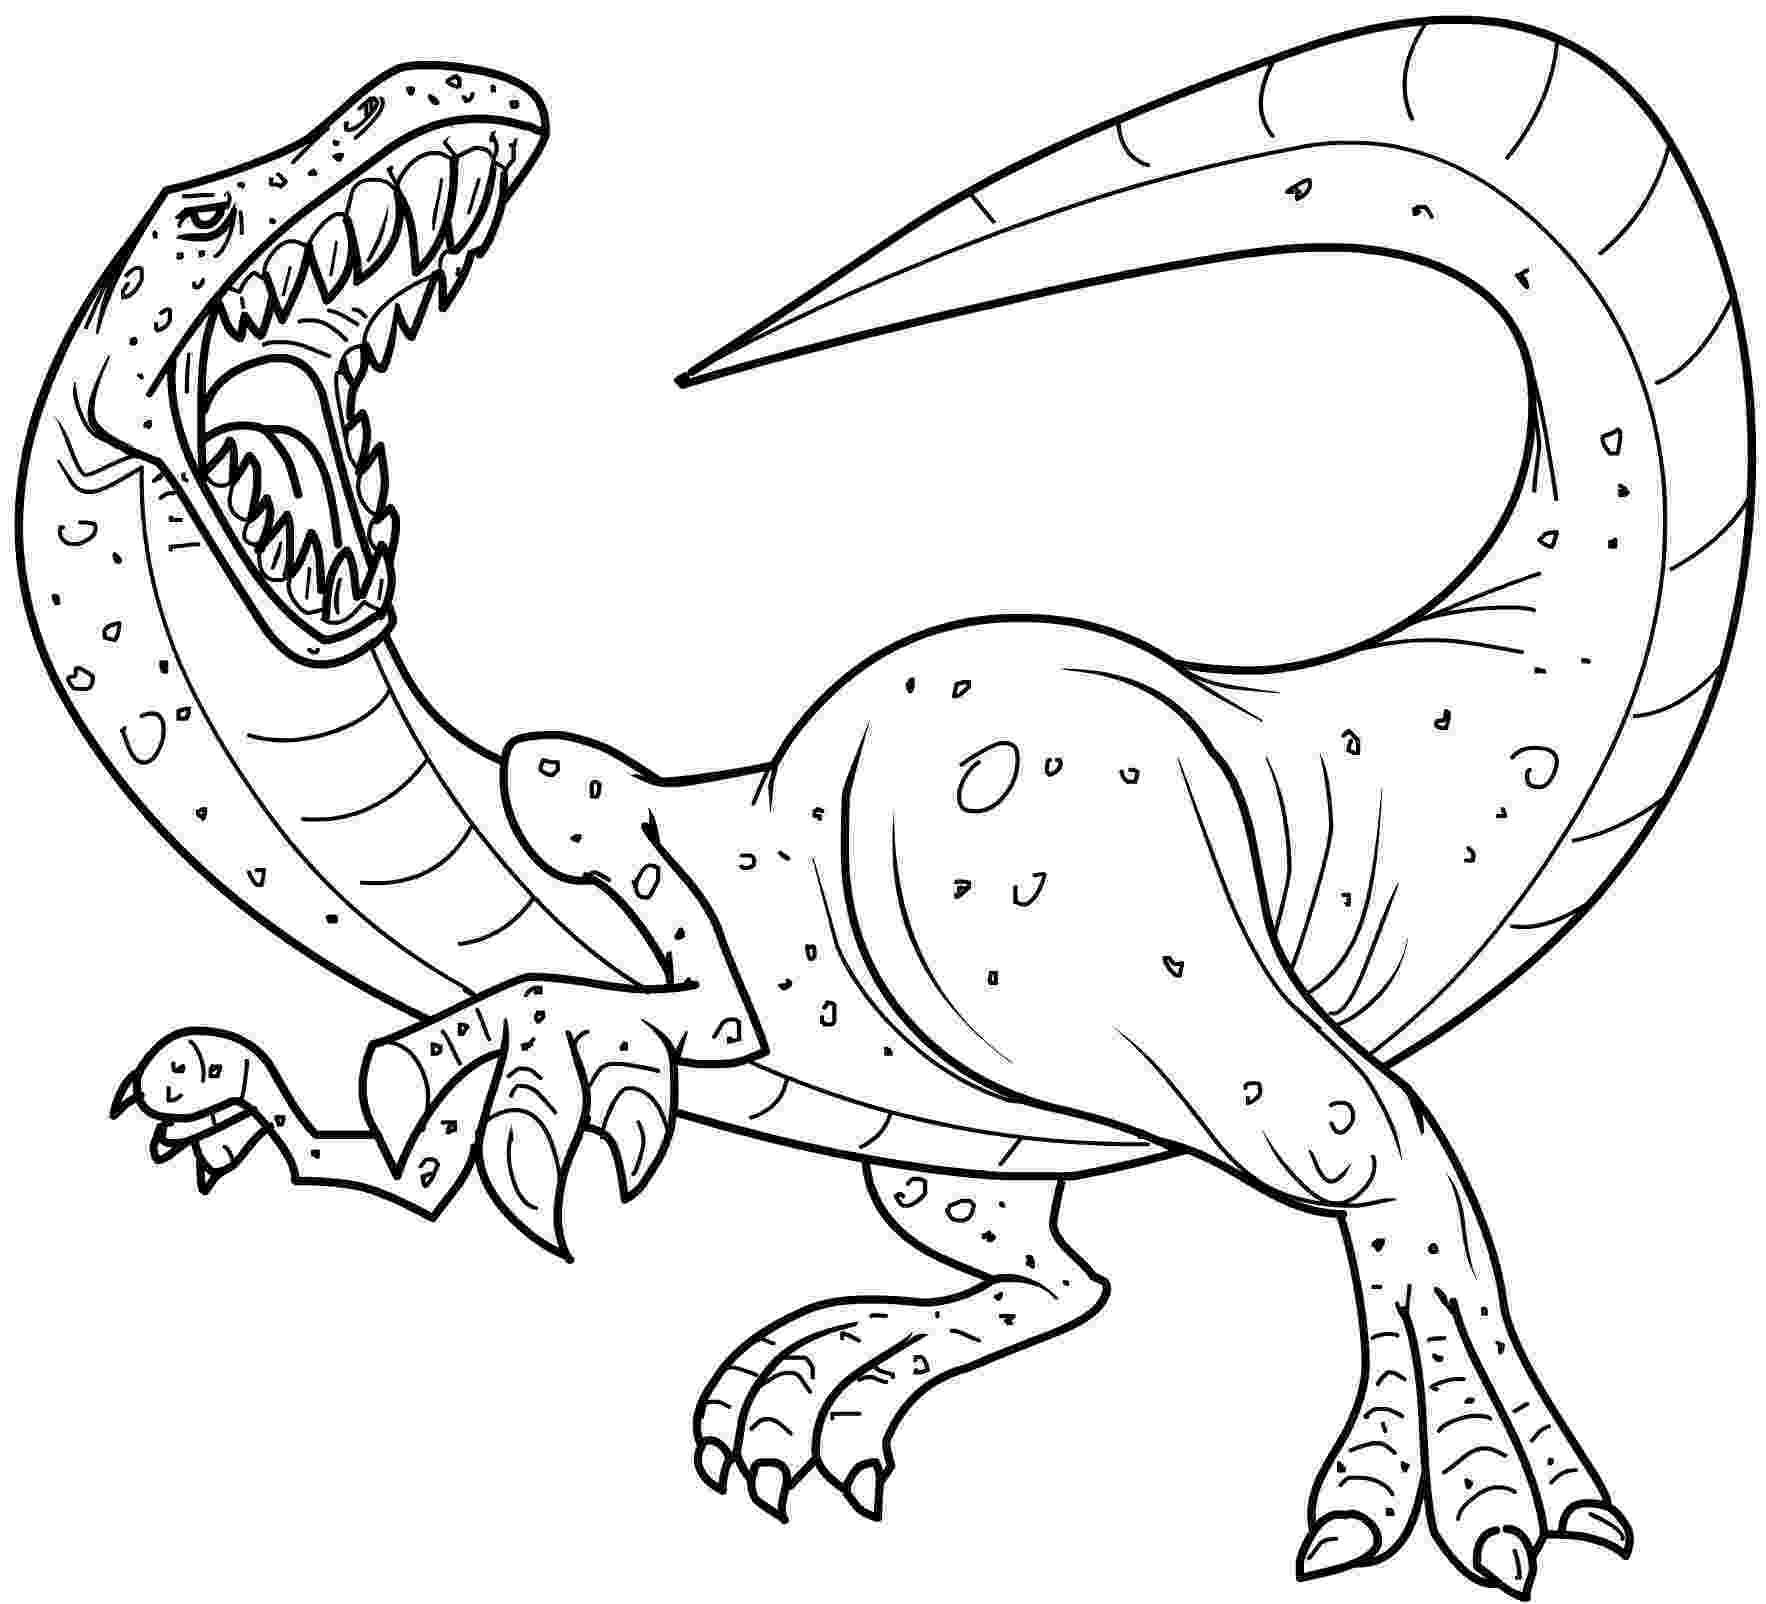 dinosaur pictures to color and print free printable dinosaur coloring pages for kids color pictures and dinosaur print to